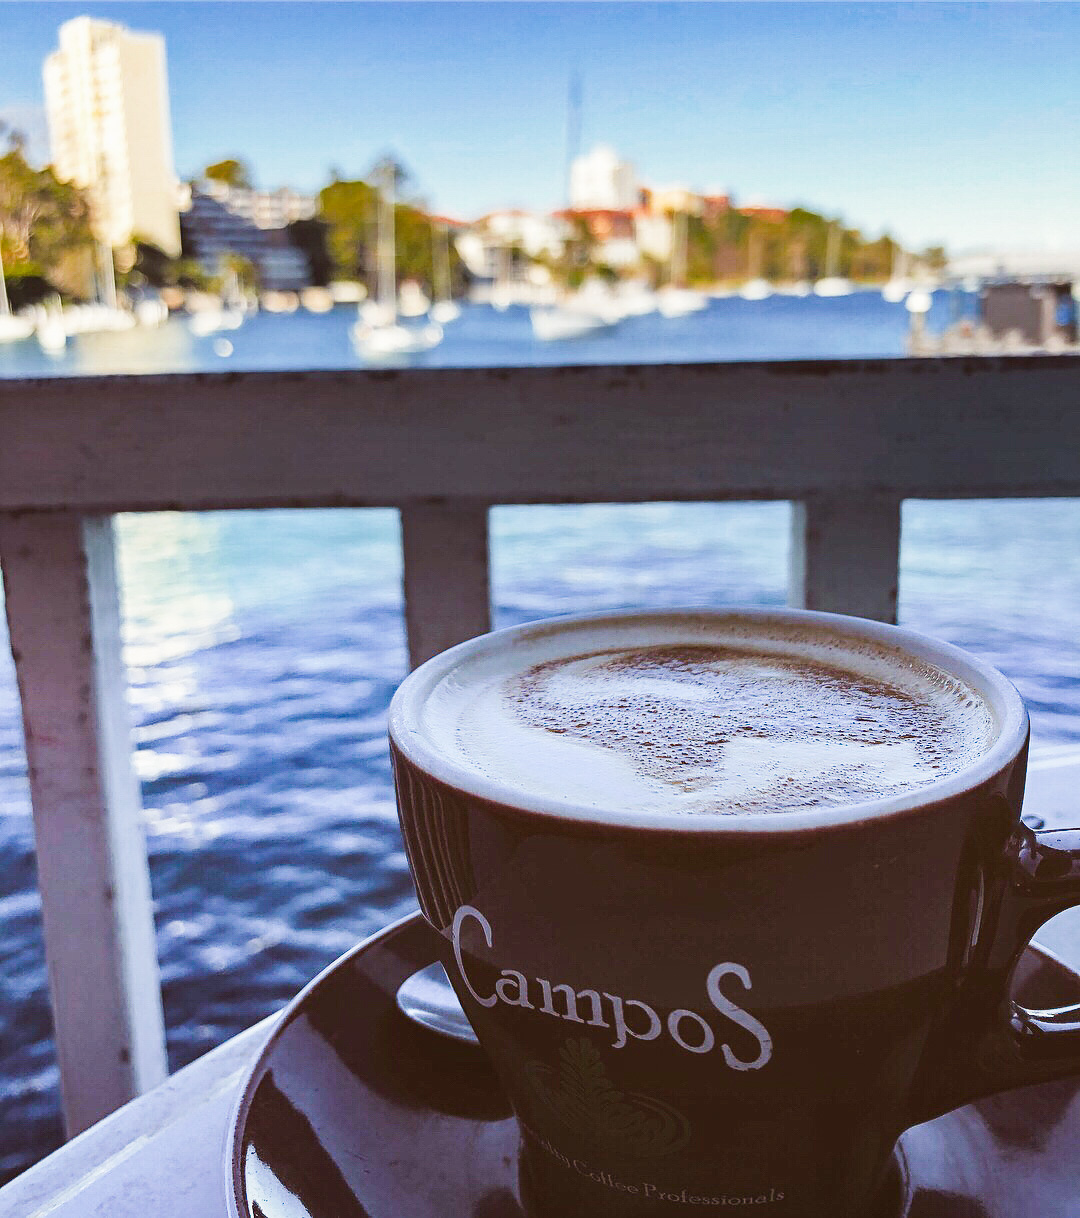 A cup of Campos coffee with a view over Sydney Harbour in the background from Thelma and Louise cafe in Neutral Bay